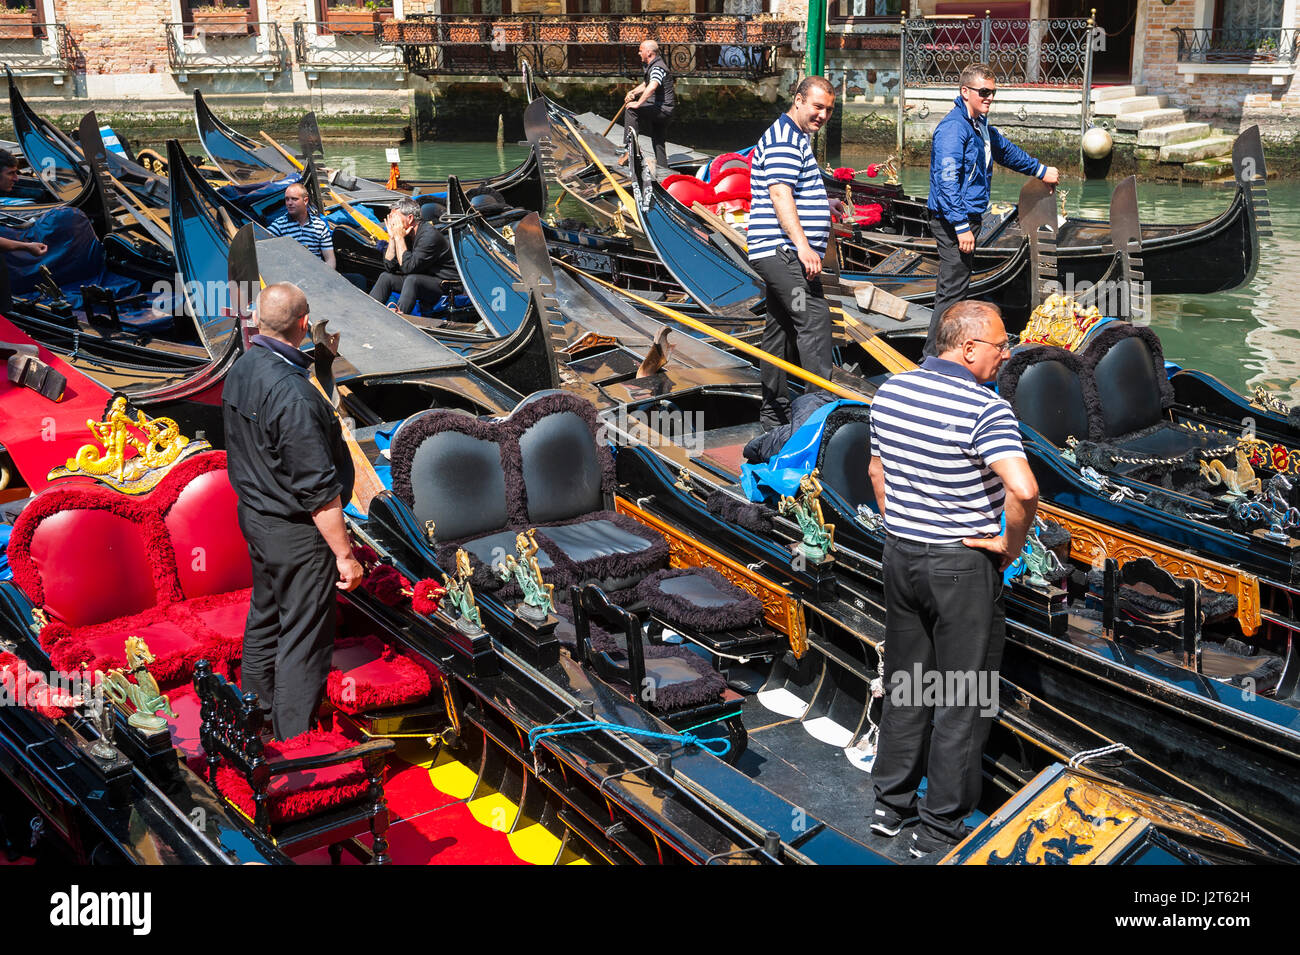 VENICE - APRIL 24, 2013: Venetian gondoliers work in the traditional Bacino Orseolo gondola parking lot behind the - Stock Image